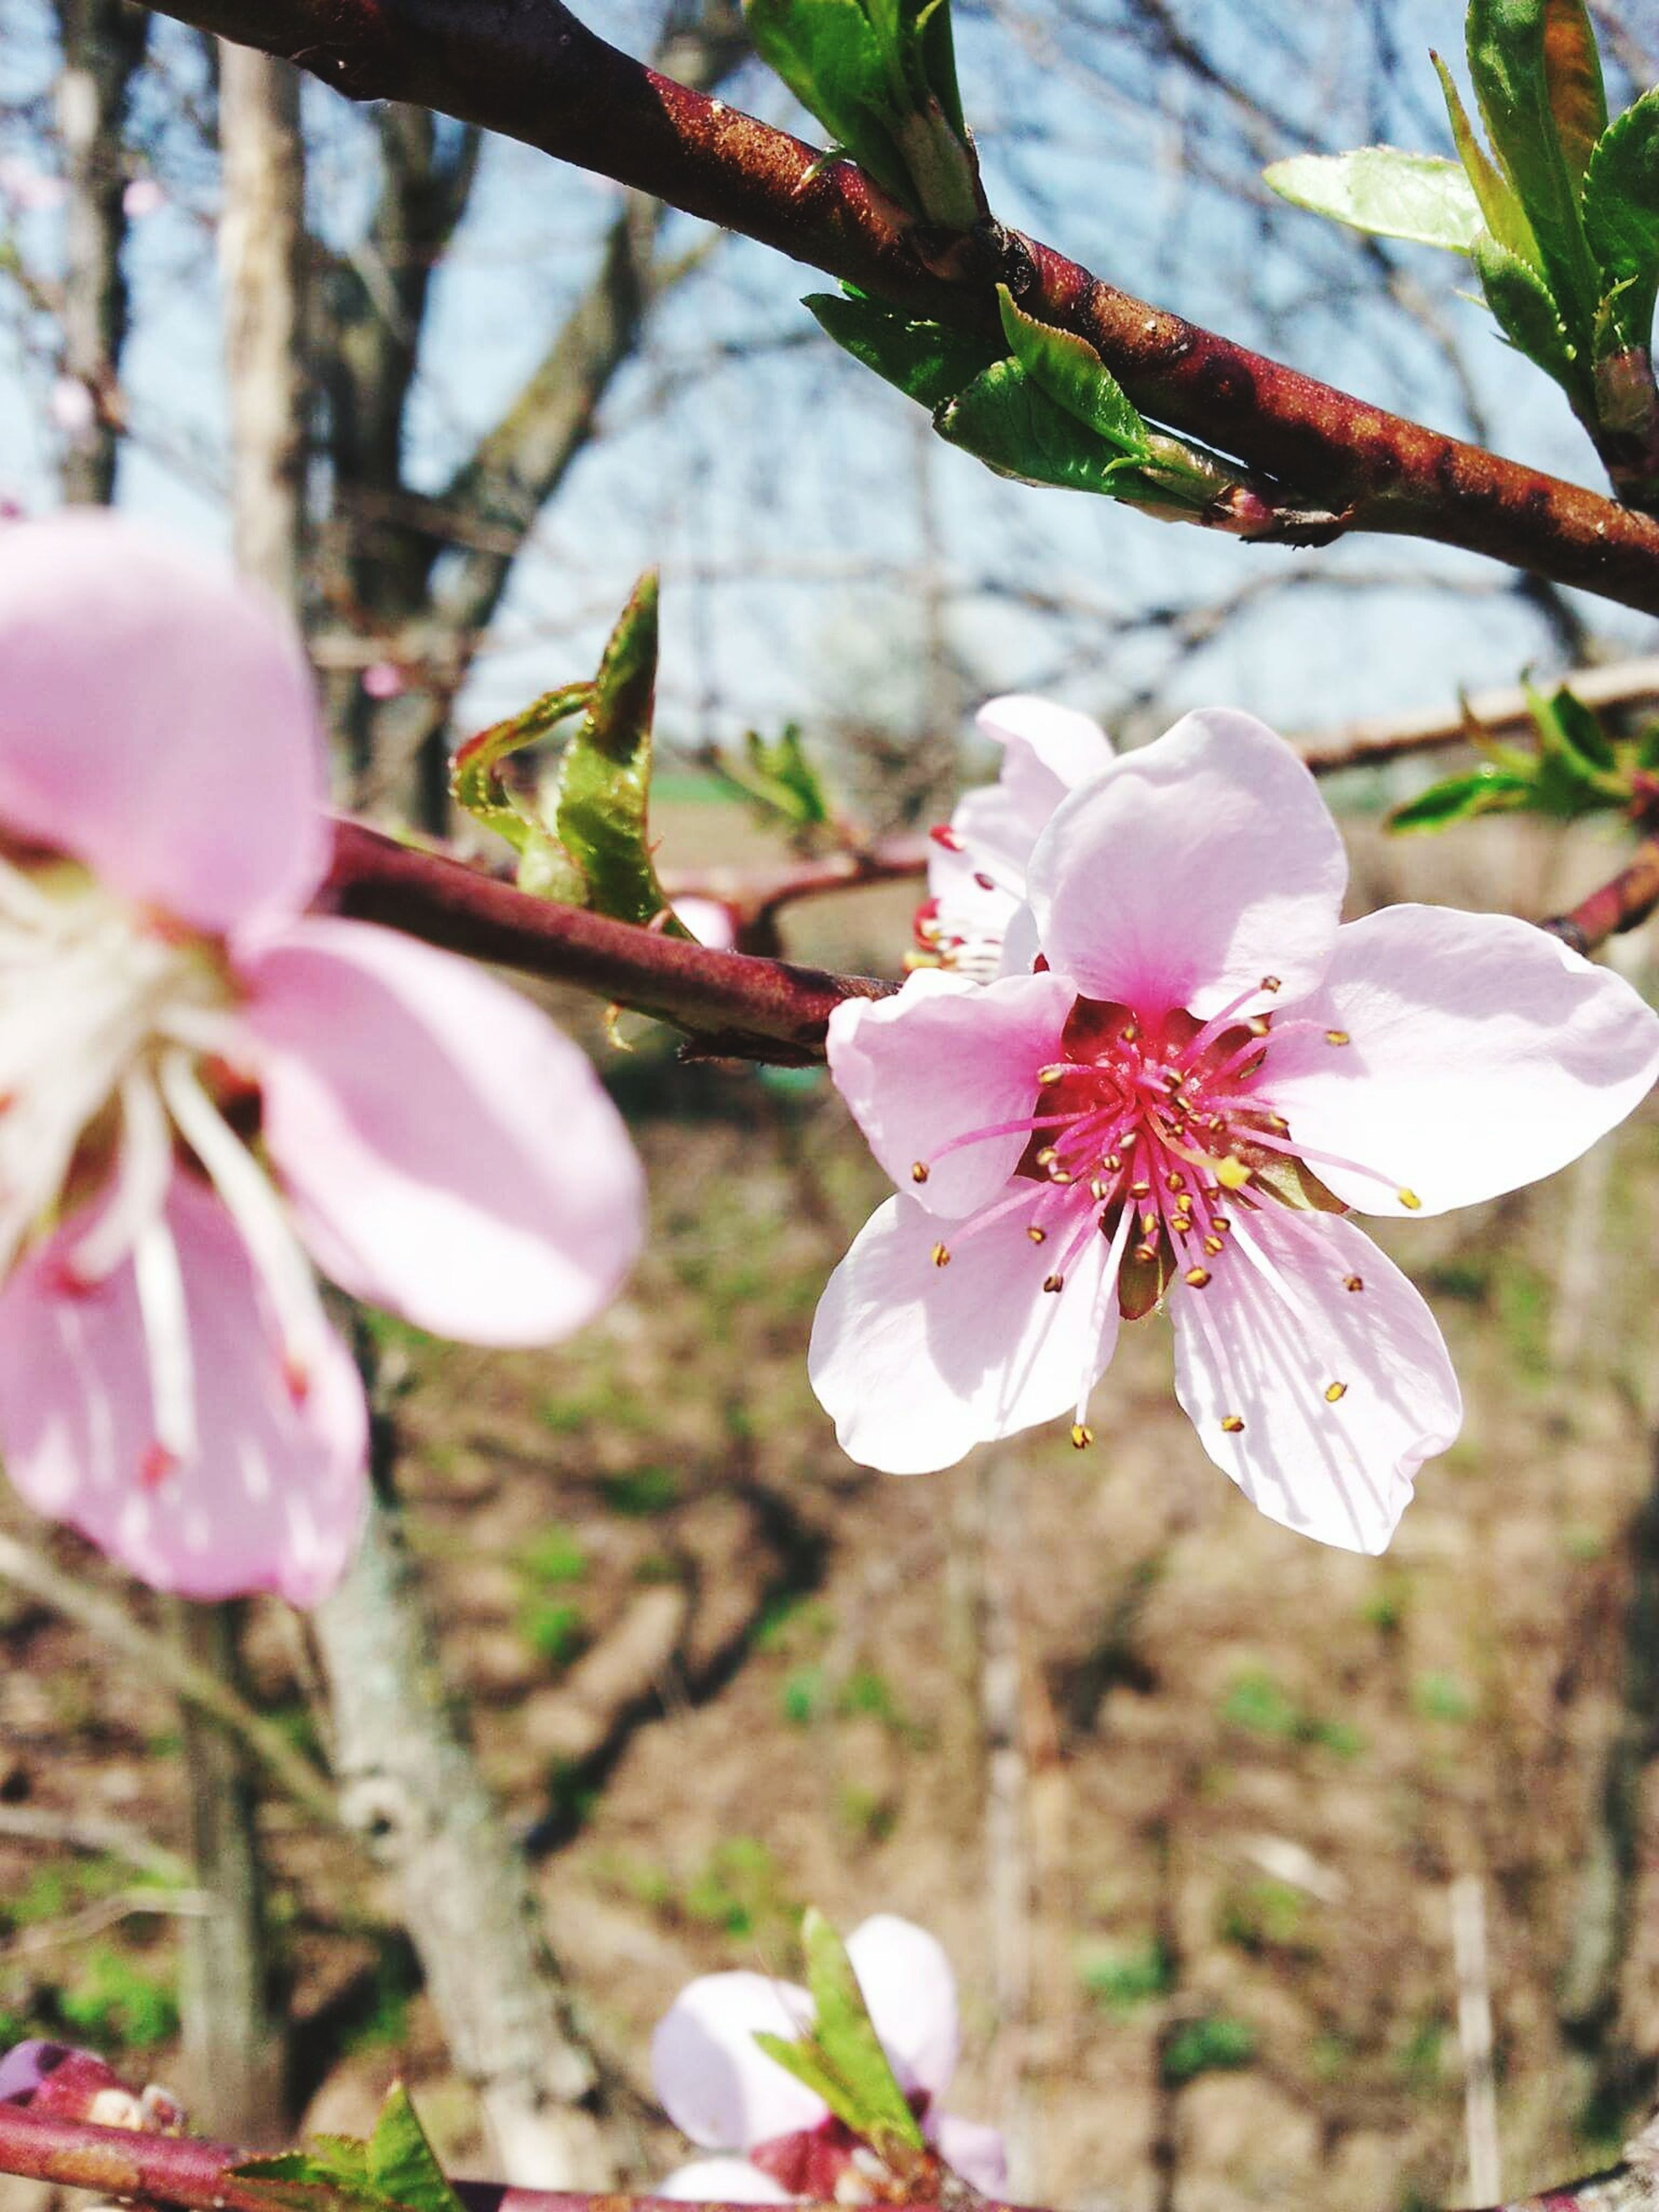 flower, freshness, fragility, petal, growth, flower head, beauty in nature, pink color, stamen, focus on foreground, close-up, nature, blossom, tree, branch, in bloom, cherry blossom, blooming, pollen, springtime